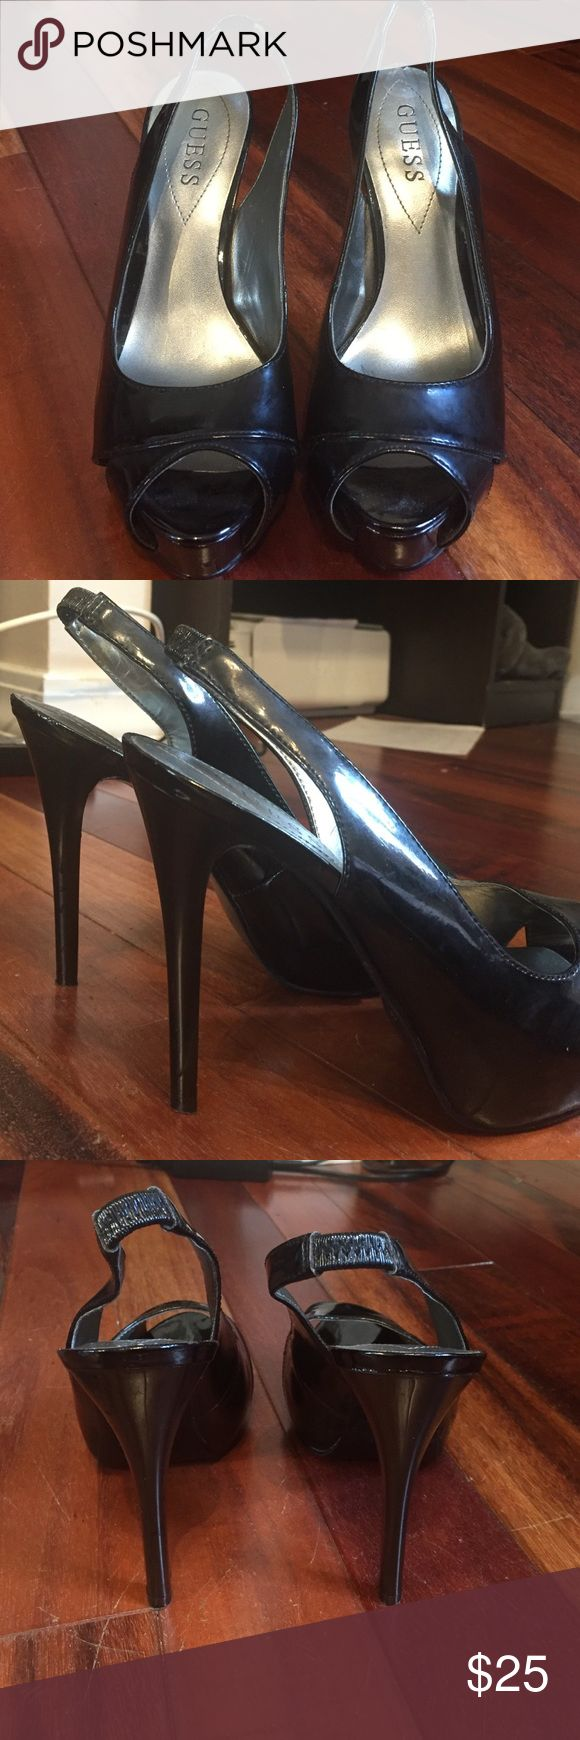 Guess Heels ! Size 6M (m meaning medium width-regular shoe) Good condition- slight wear and tear. Worn very few times. Bottom soles are in good condition.  All black with peep toe and attached strap around the ankle. These no longer fit me, but I think they run a little smaller than a usual shoe. GUESS Shoes Heels